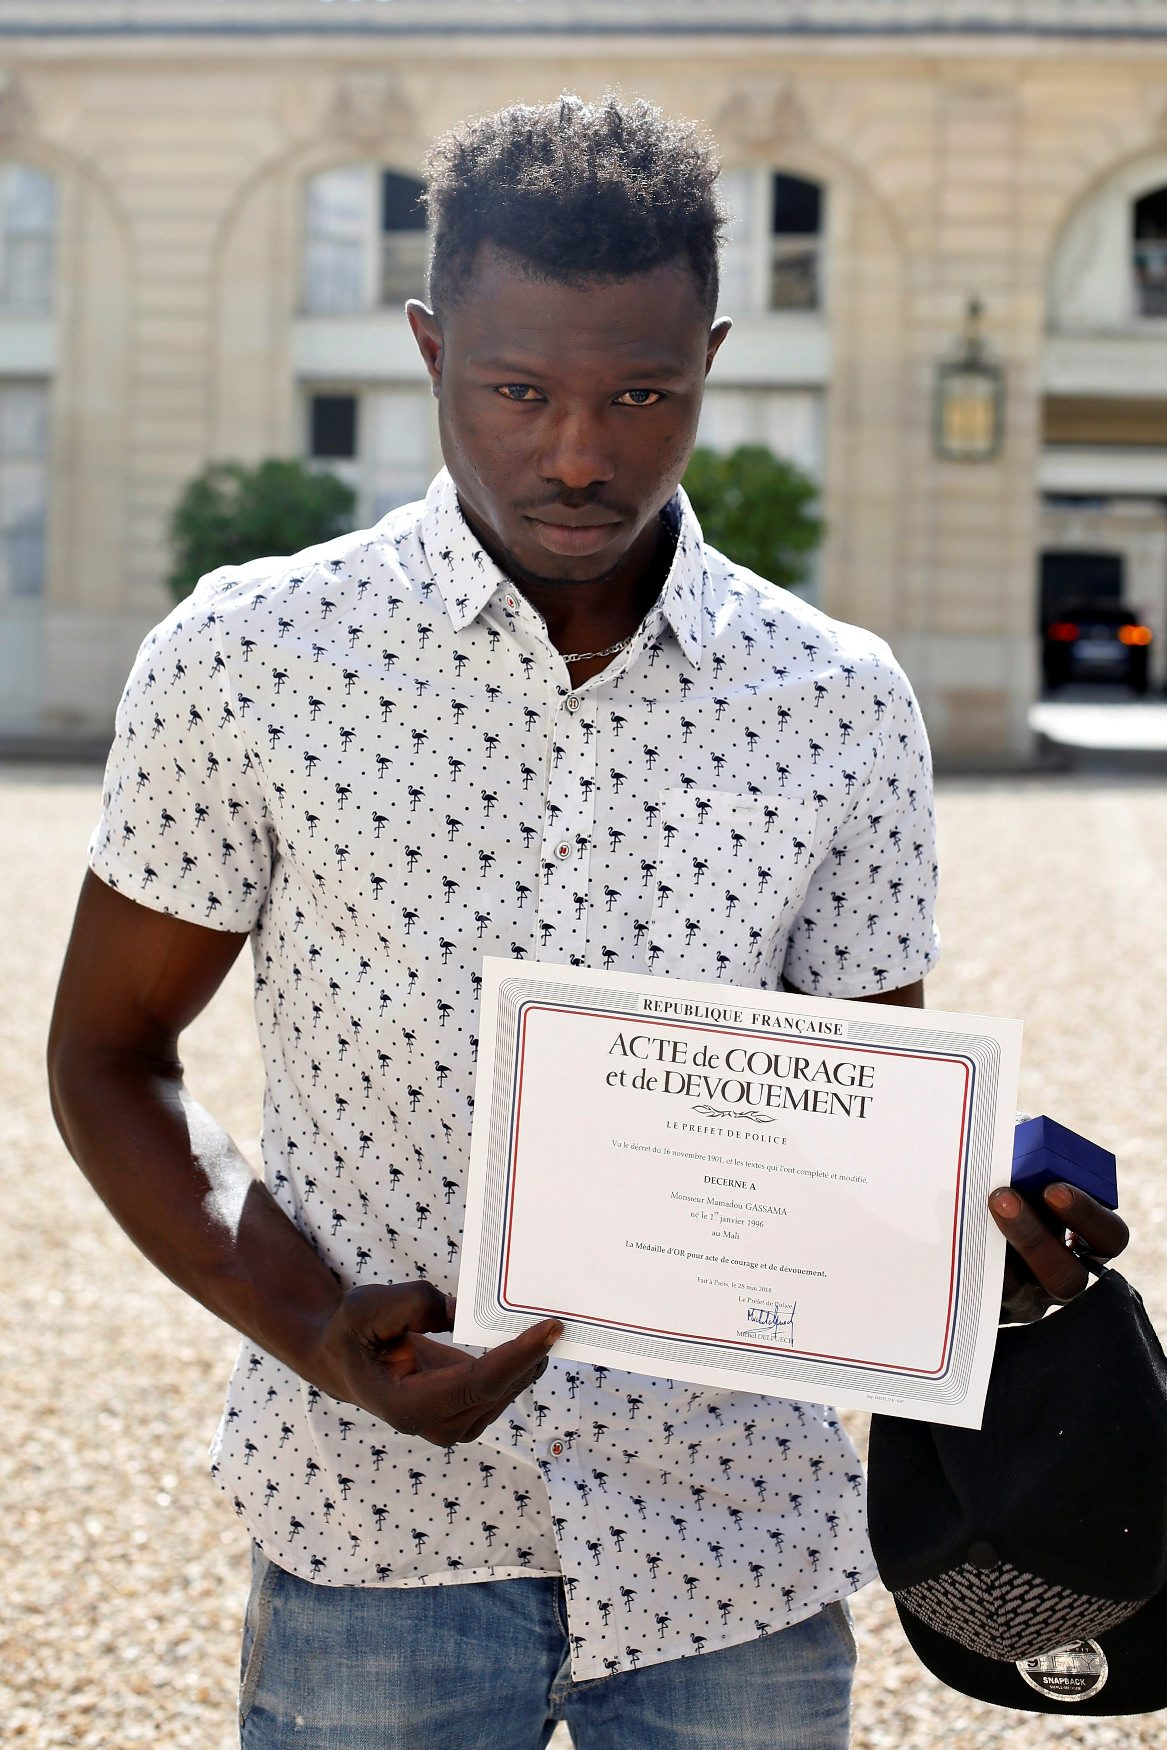 Mamoudou Gassama, 22, from Mali, displays a certificate of courage and dedication signed by Paris Police Prefect Michel Delpuech as he leaves the Elysee Palace after his meeting with French President Emmanuel Macron, in Paris, France, May 28, 2018. Mamoudou Gassama living illegally in France is being honored by Macron for scaling an apartment building over the weekend to save a 4-year-old child dangling from a fifth-floor balcony. Thibault Camus/Pool via Reuters